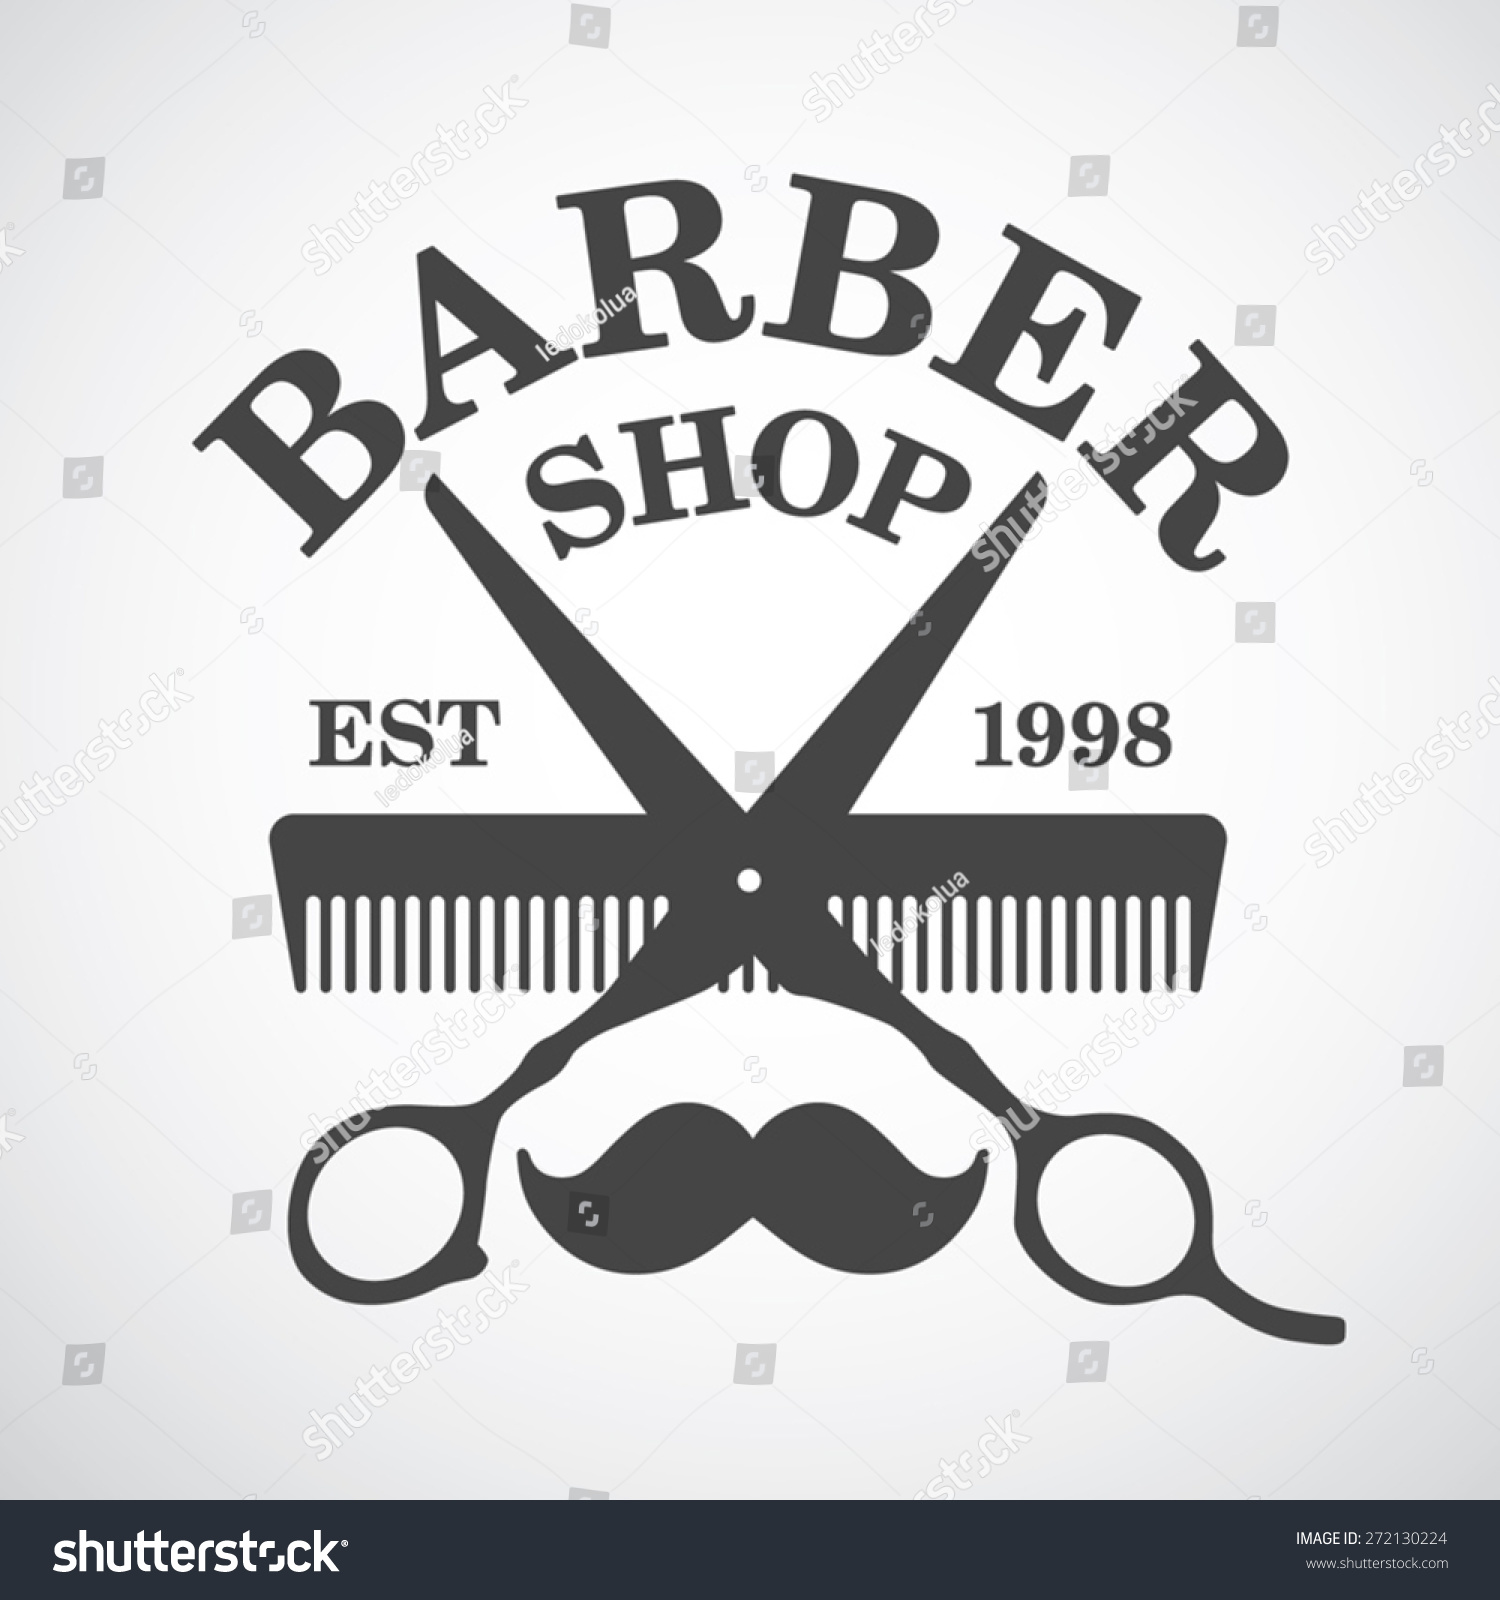 Antique barber shop sign - Vintage Barber Shop Logo Template Design Elements